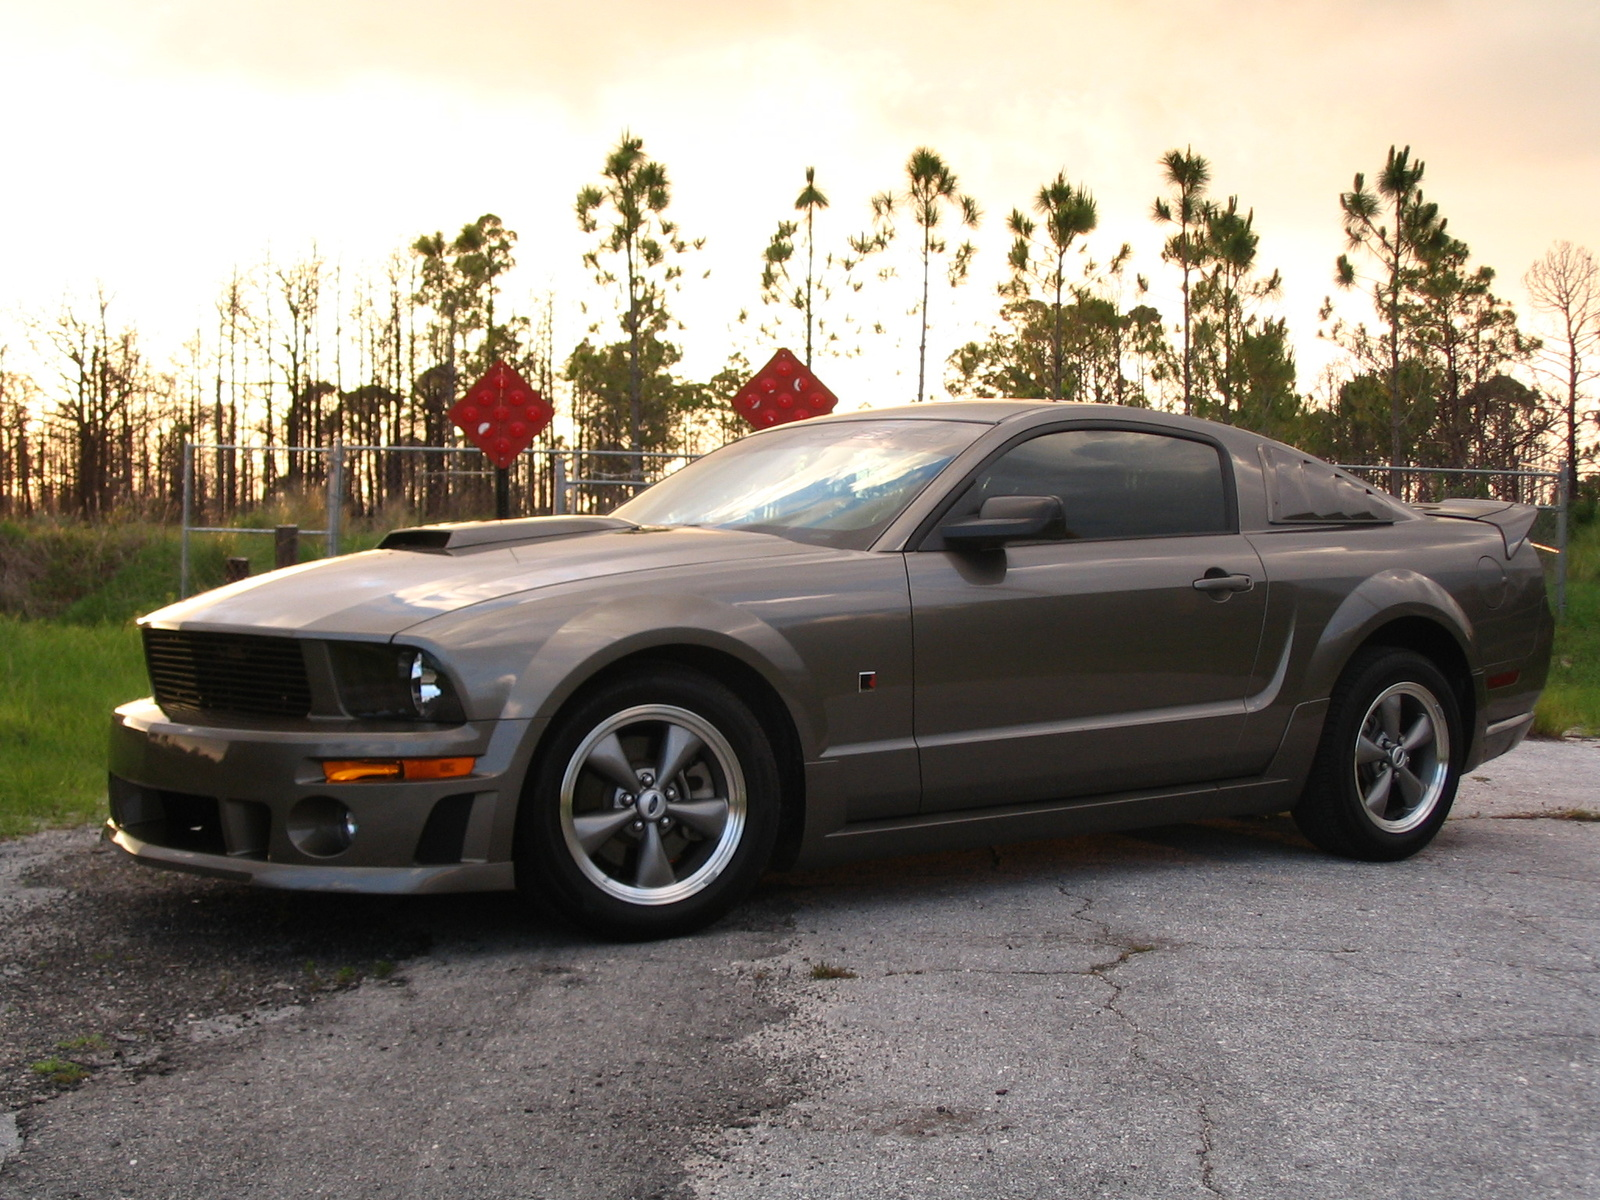 2005 ford mustang gt price car autos gallery. Black Bedroom Furniture Sets. Home Design Ideas